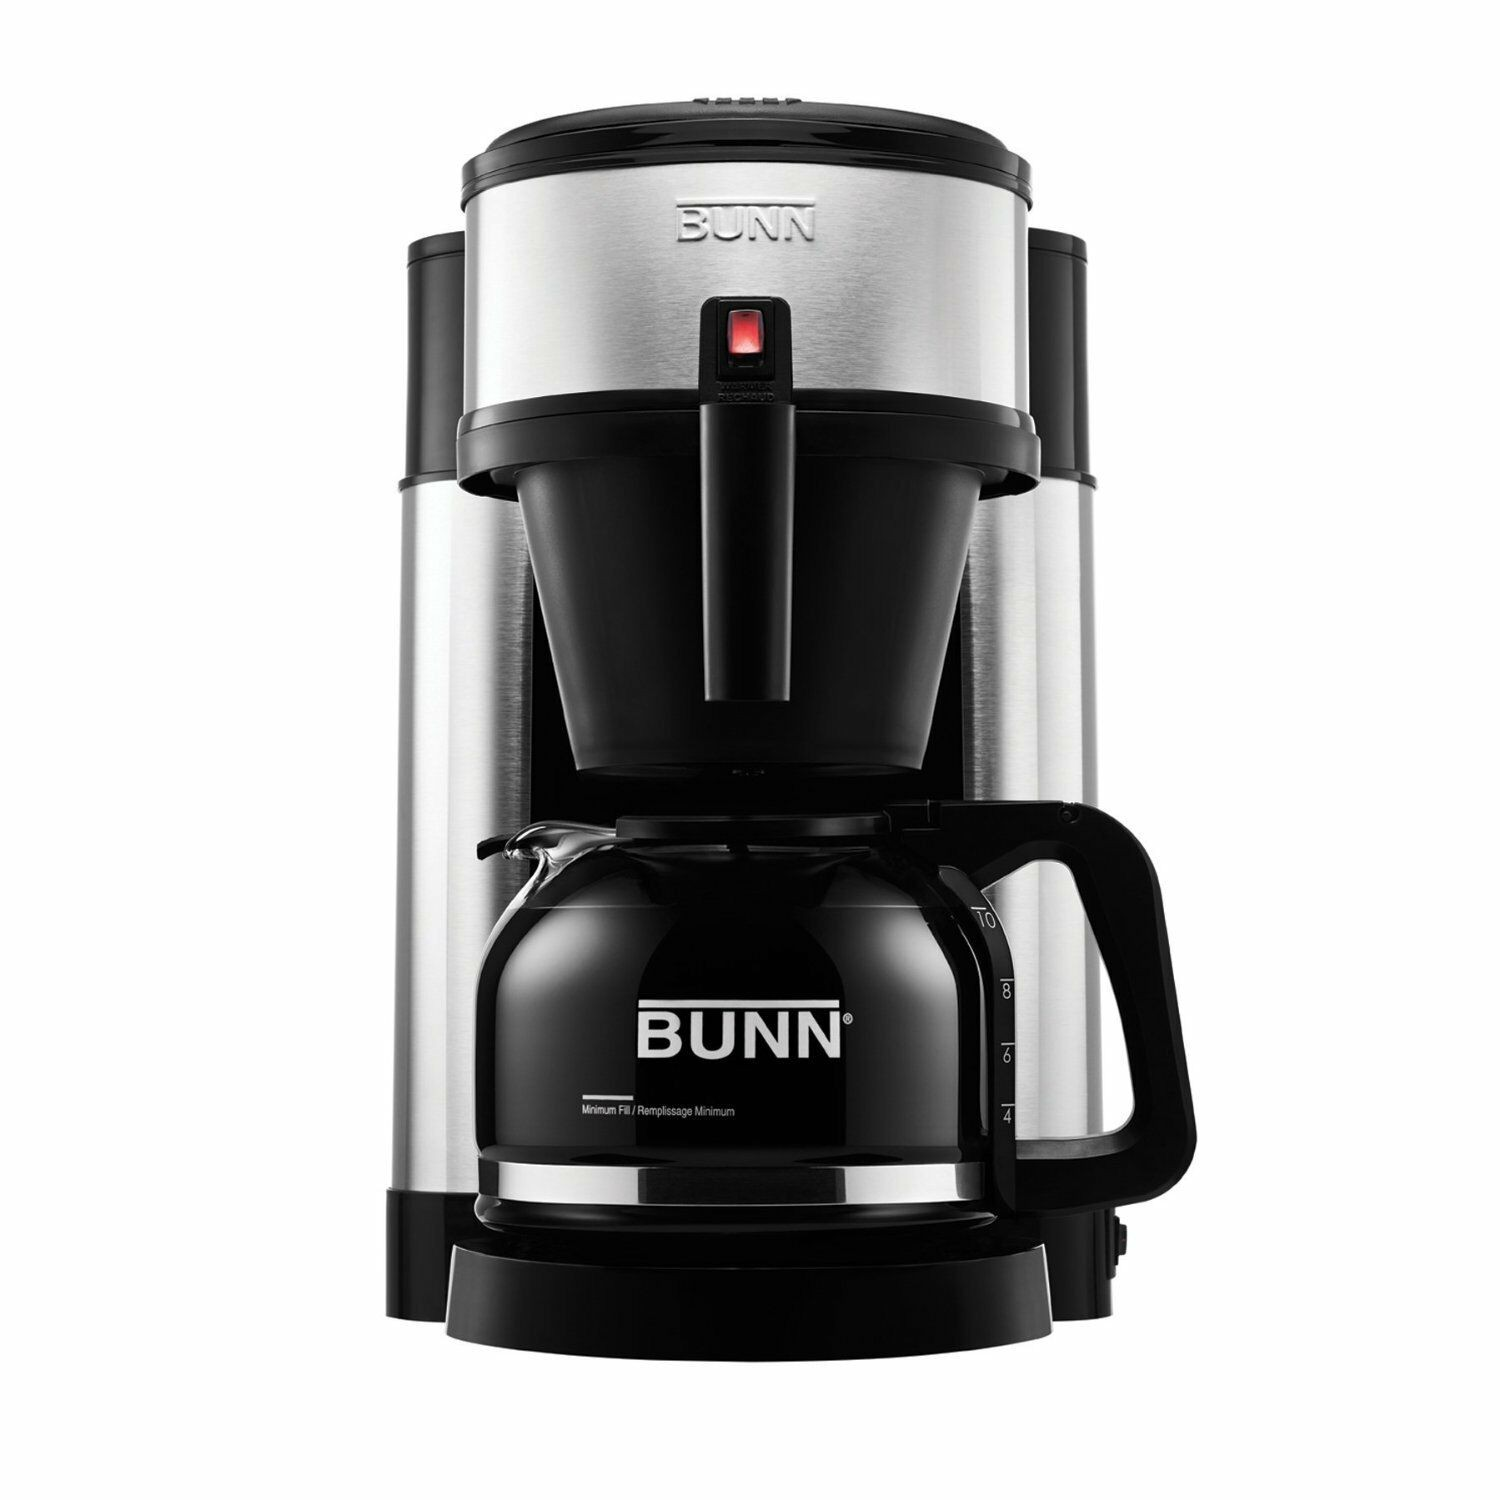 Bunn Coffee Maker Parts Diagram Bunn Nhs Velocity Brew 10 Cup Home Coffee Brewer Stainless Steel Of Bunn Coffee Maker Parts Diagram